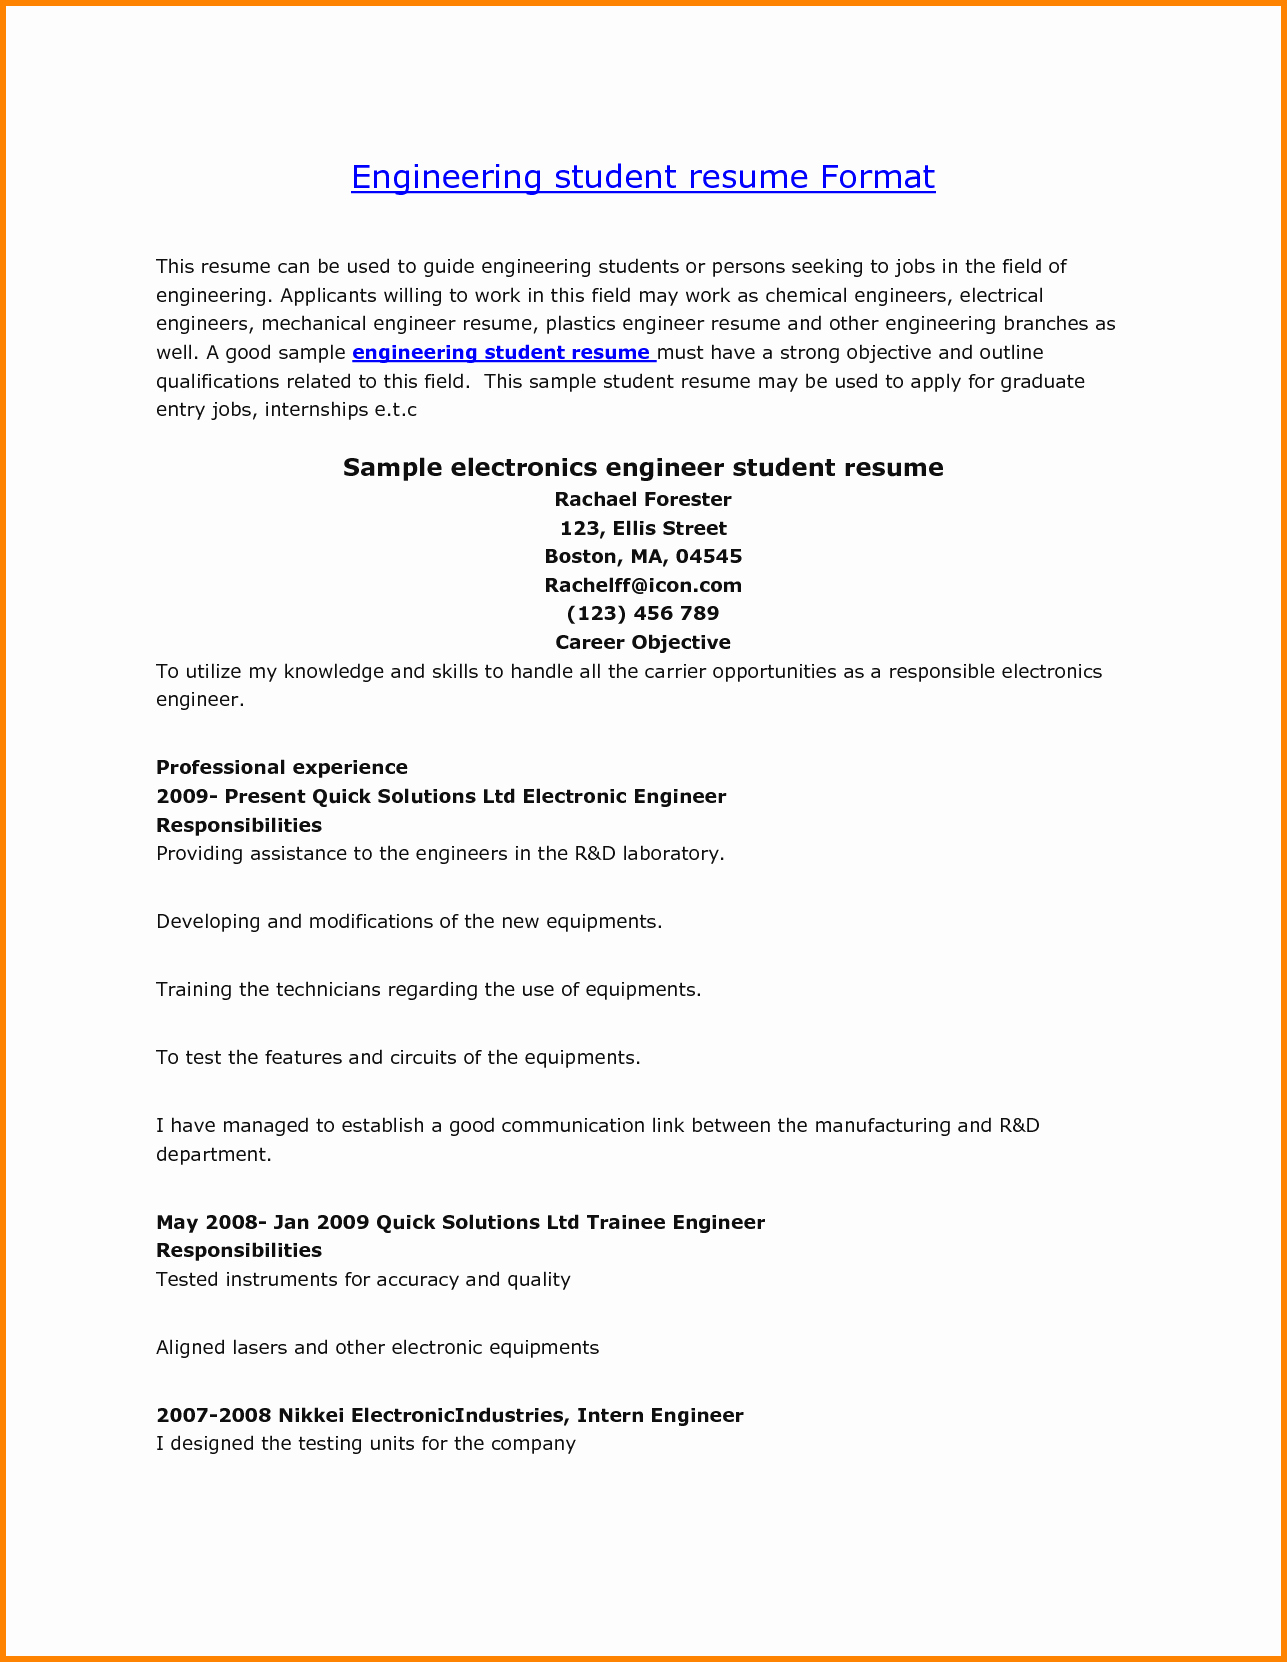 Engineering Student Resume Examples Lovely 7 Engineering Student Resume format Examples